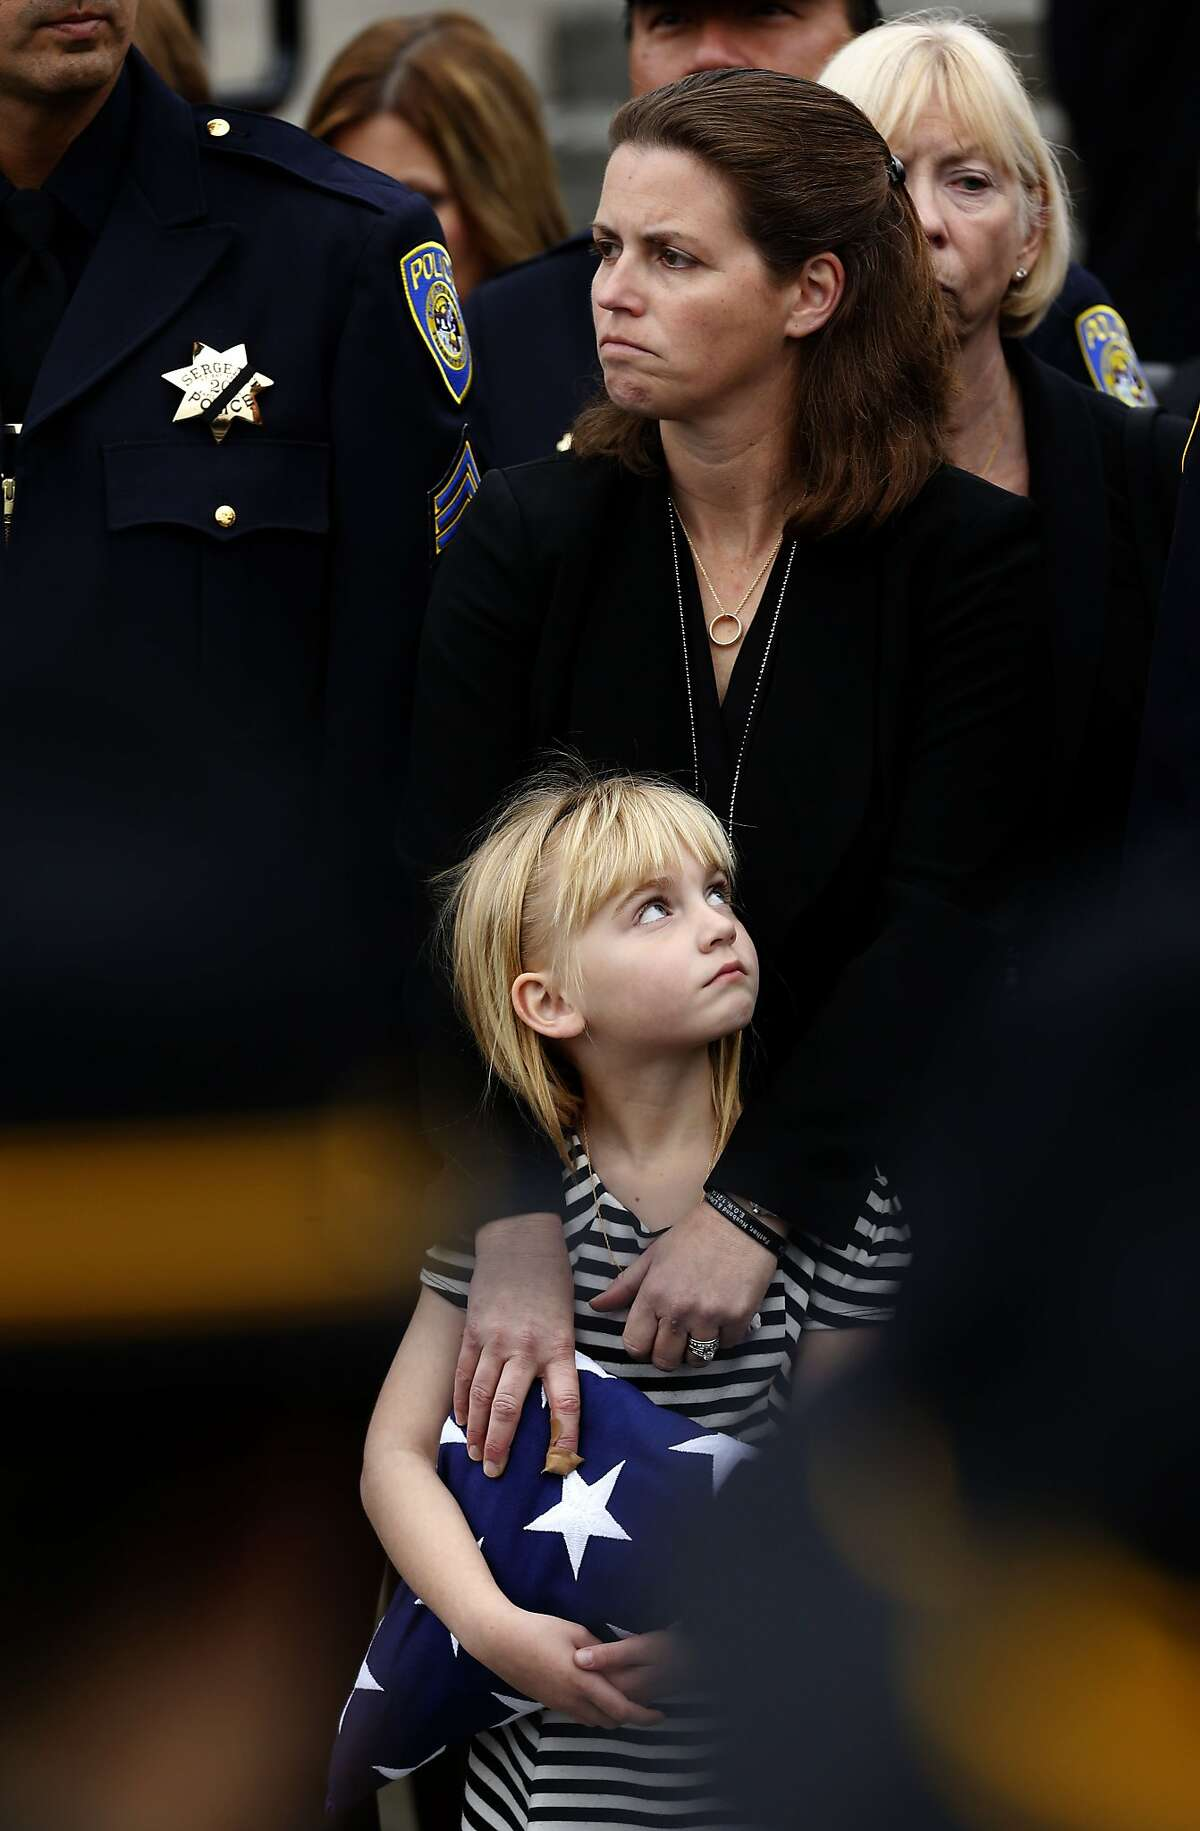 The daughter of BART police Sgt. Tom